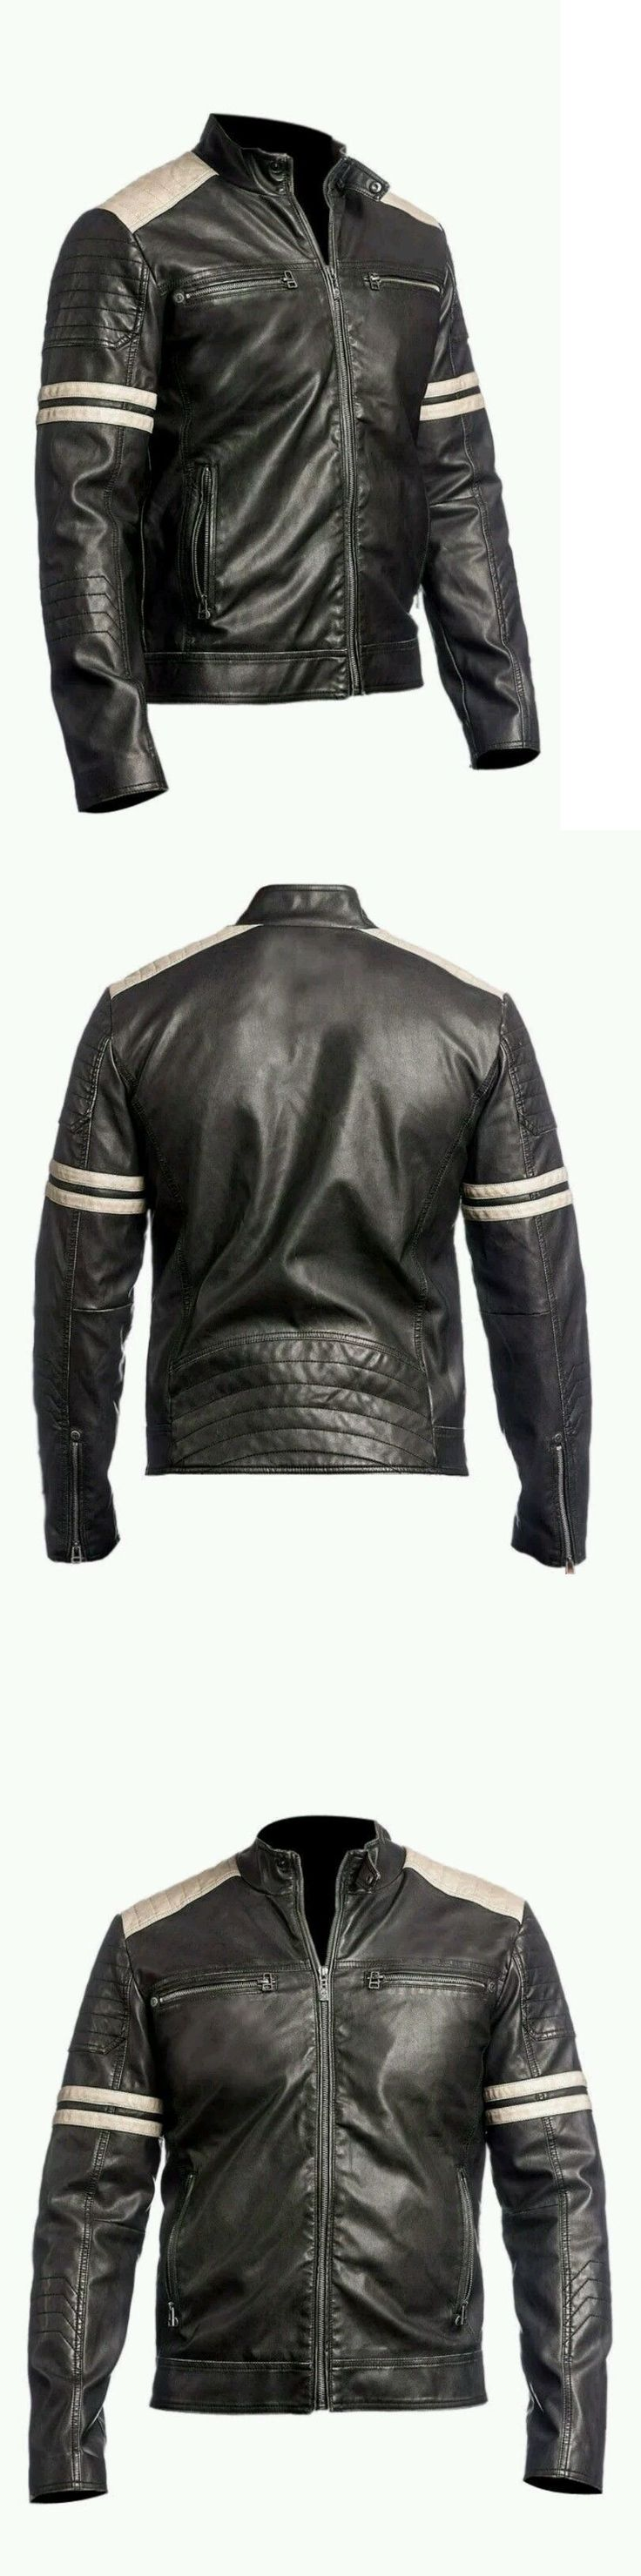 Men Coats And Jackets: New Mens Leather Jacket Black Slim Fit Biker Vintage Motorcycle Cafe Racer -> BUY IT NOW ONLY: $137.0 on eBay!